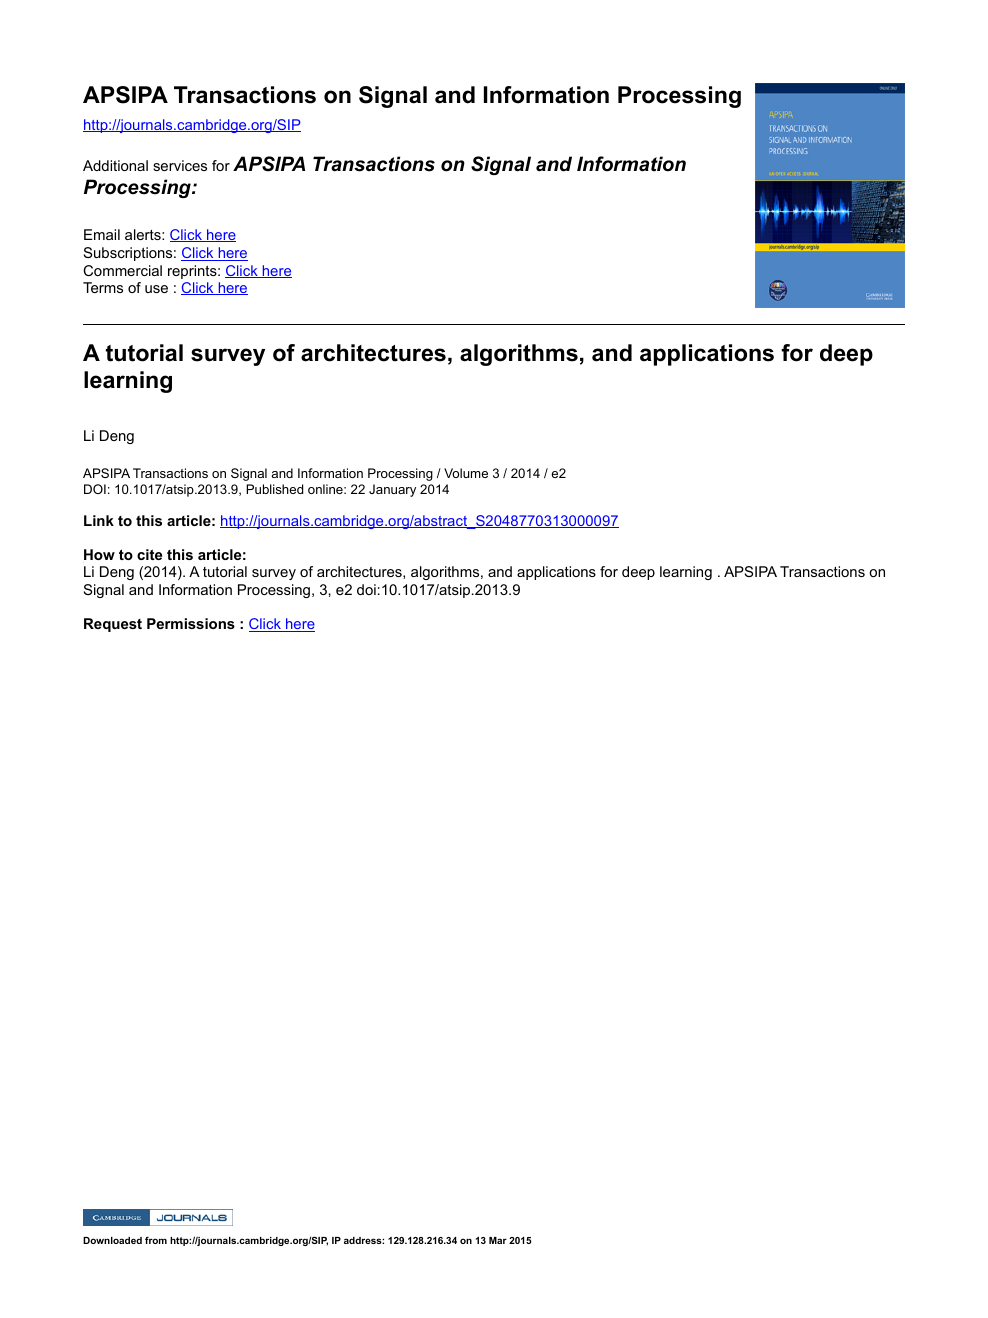 A tutorial survey of architectures, algorithms, and